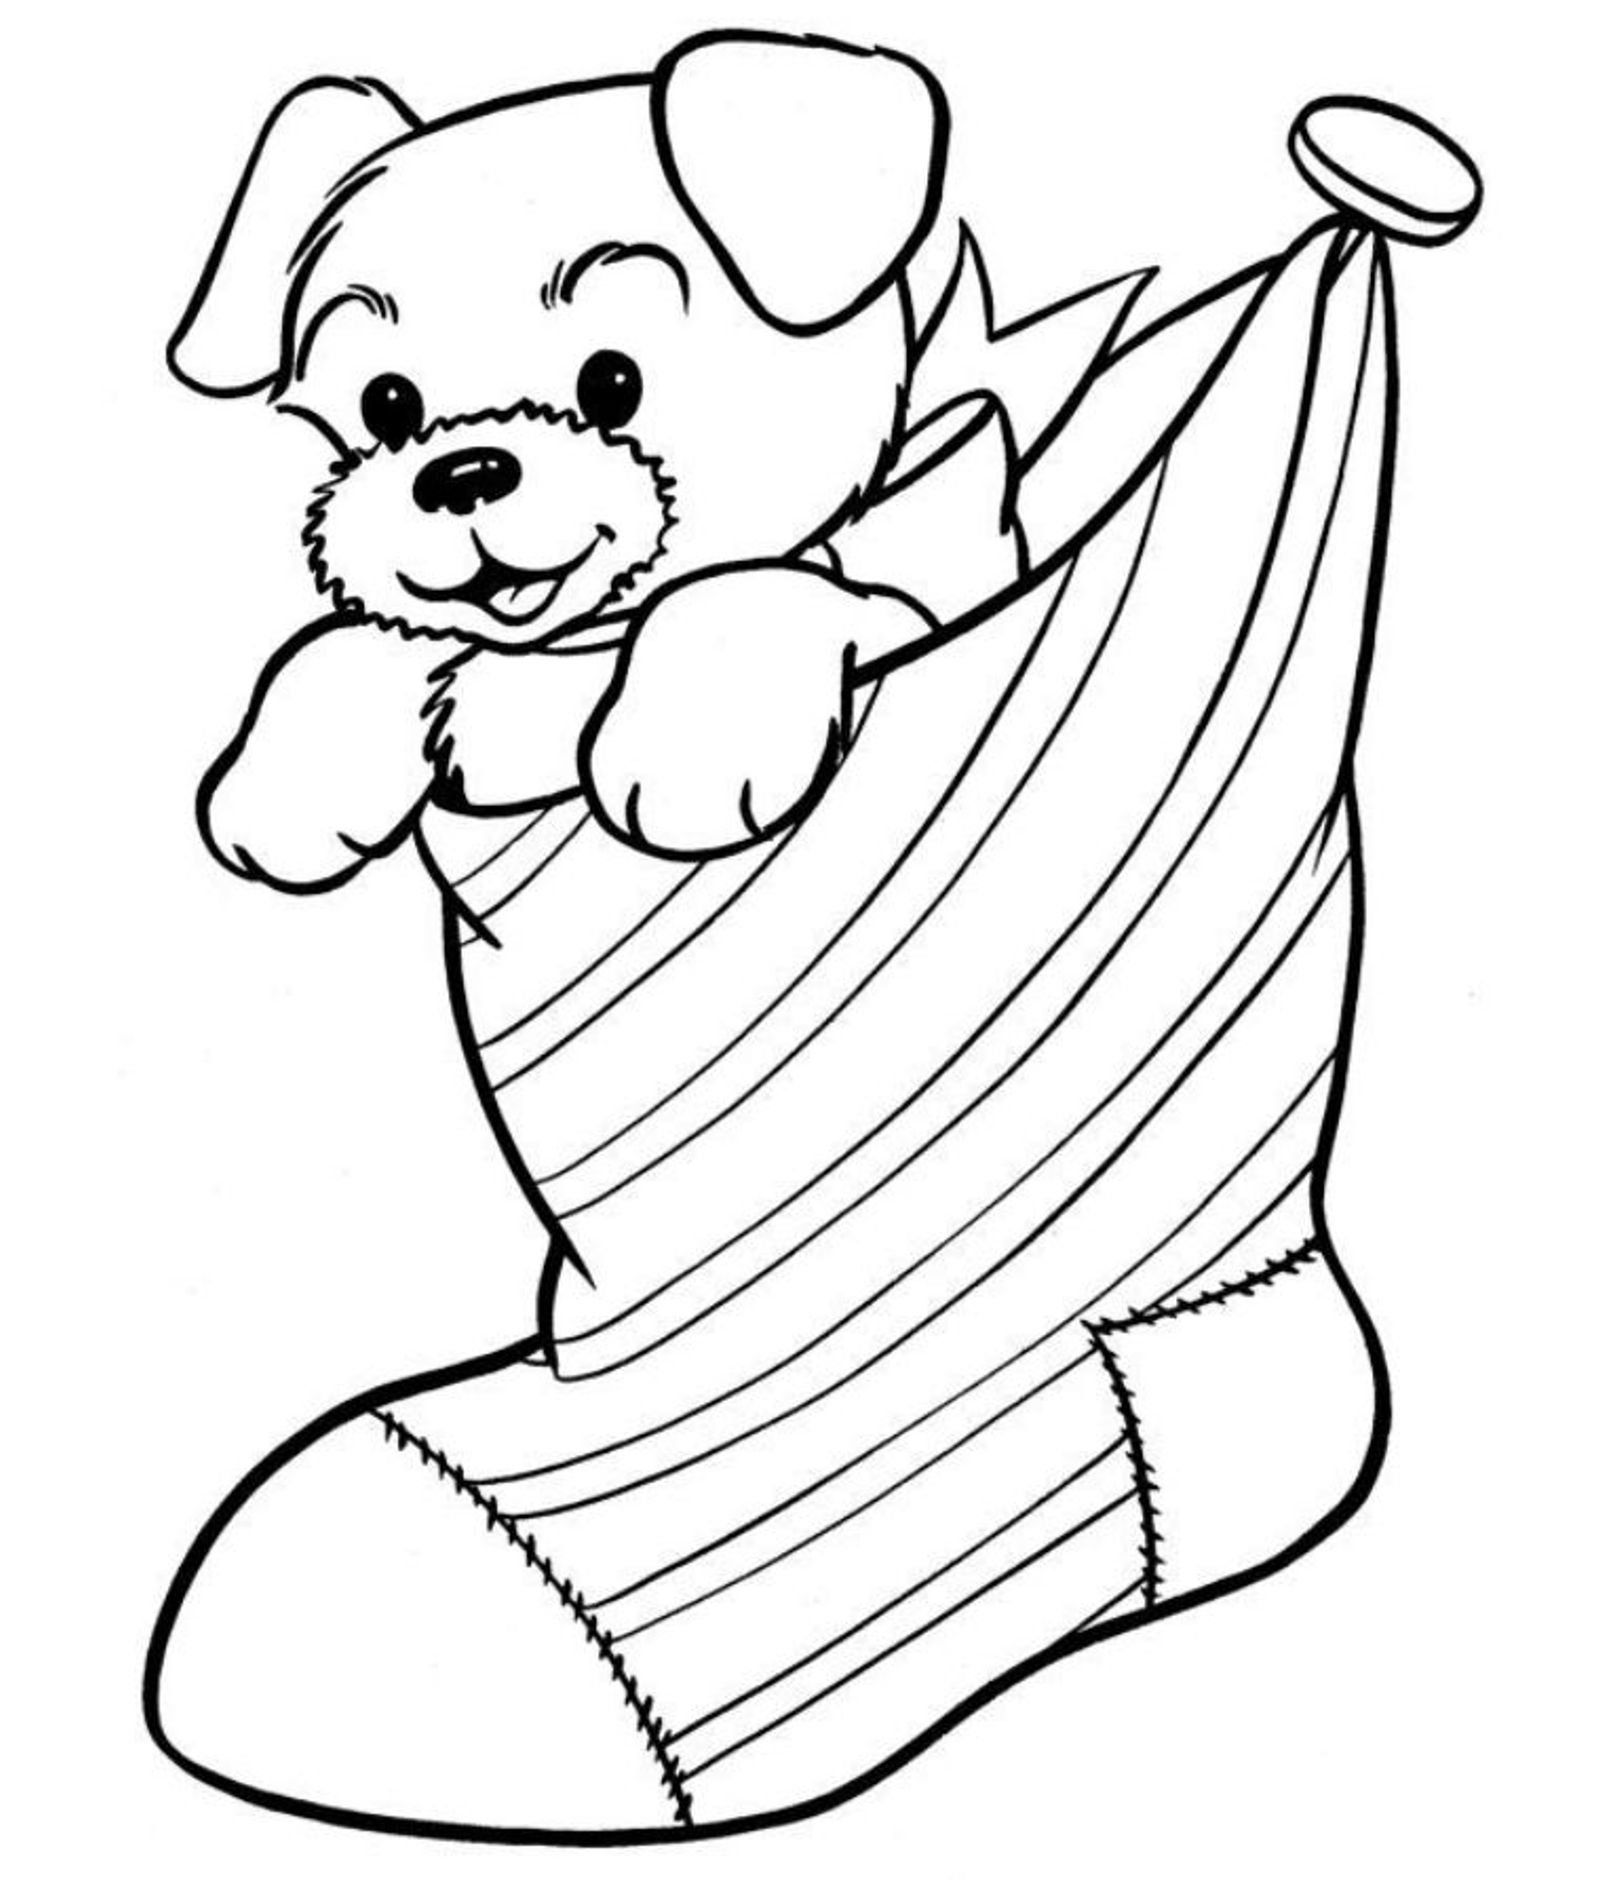 Christmas Coloring Puppy In The Stocking Free Coloring Pages For Christmas P Printable Christmas Coloring Pages Puppy Coloring Pages Christmas Coloring Pages